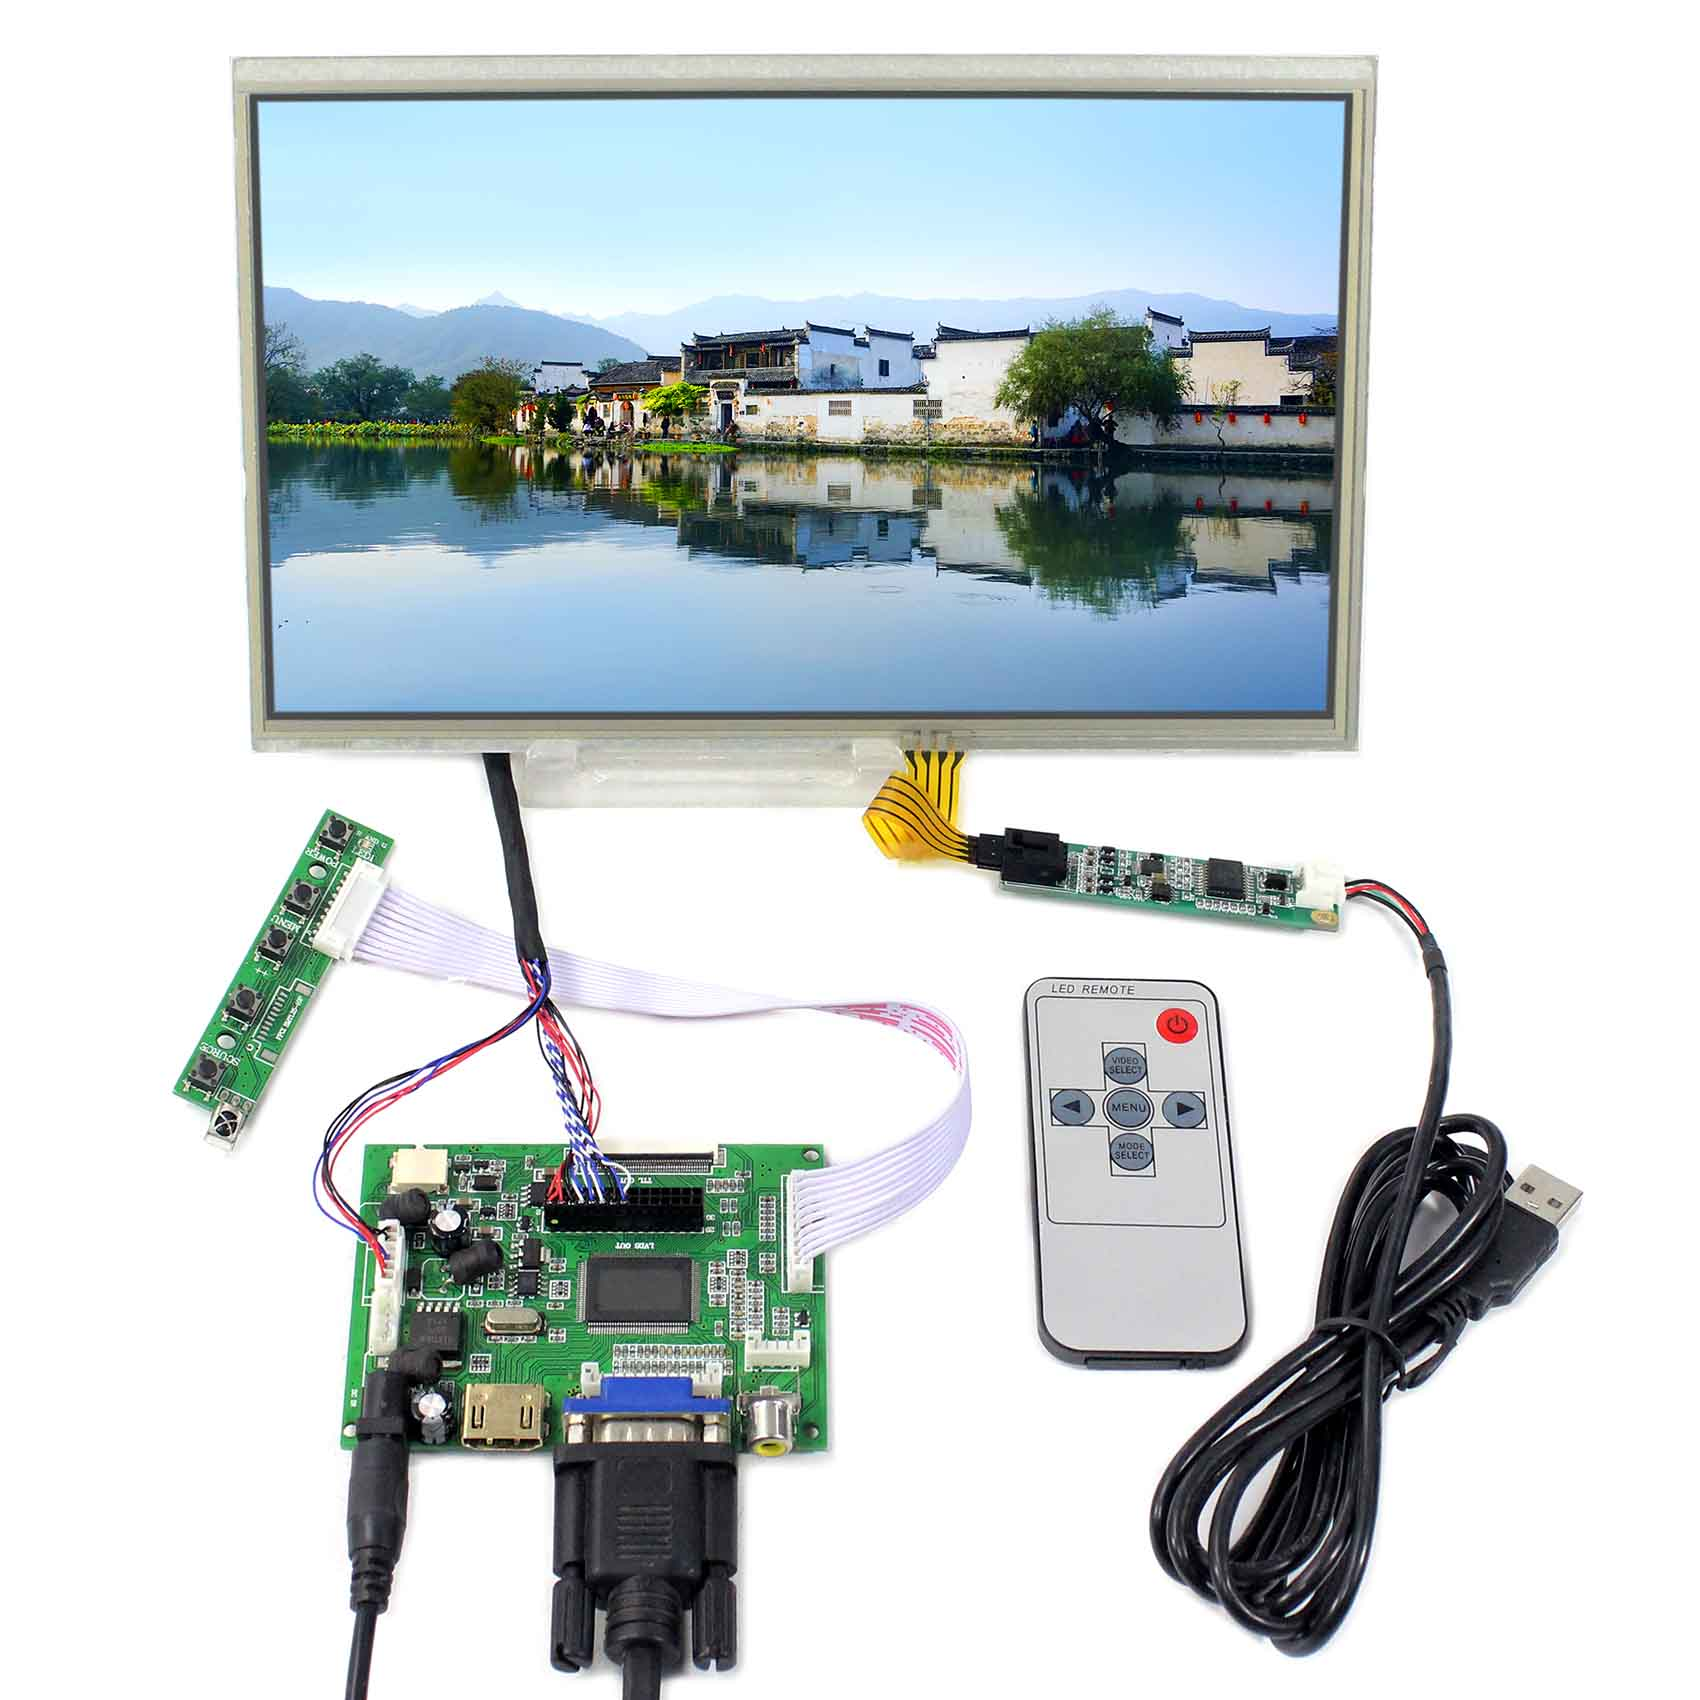 10.1 Tocuh LCD Display 1024x600 LTN101NT02 B101AW03  N101L6  HDMI DVI VGA LCD Board 10.1 LCD Screen 10.1 Tocuh LCD Display 1024x600 LTN101NT02 B101AW03  N101L6  HDMI DVI VGA LCD Board 10.1 LCD Screen